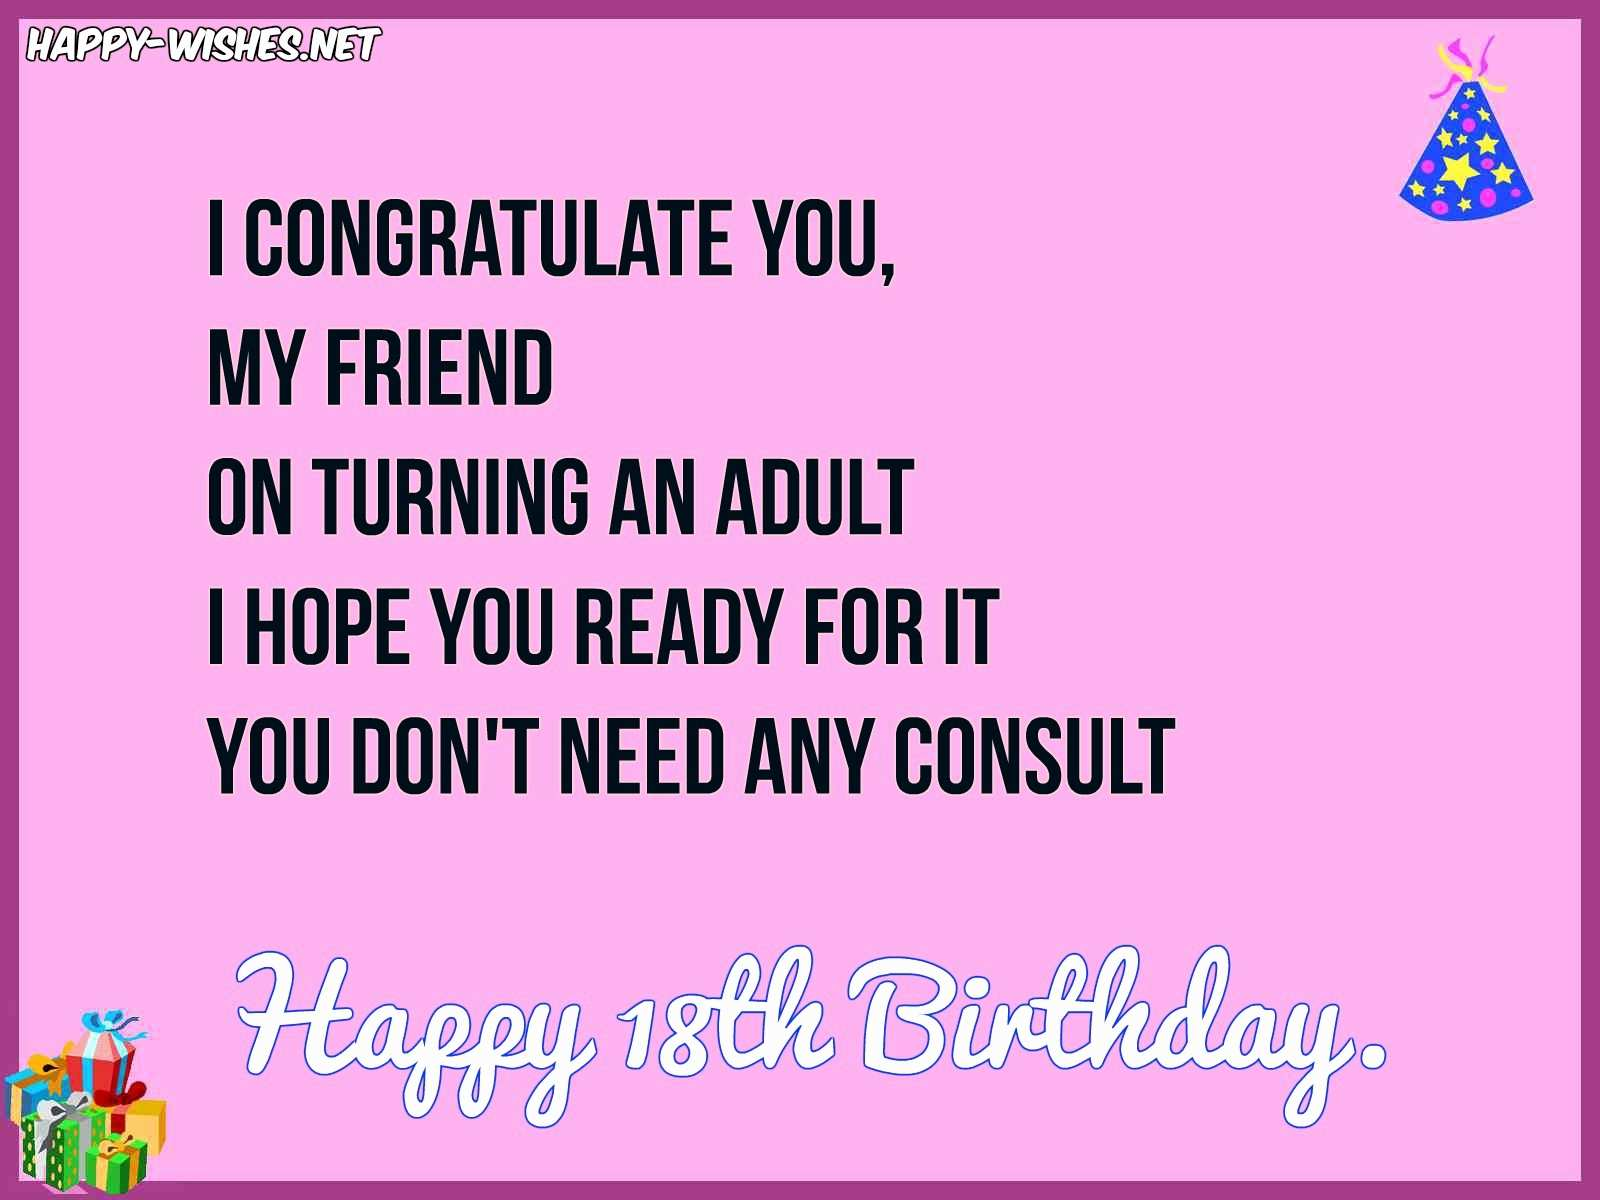 18th birthday message for a friend ; happy-birthday-wishes-to-son-unique-quotes-to-wish-a-friend-happy-birthday-luxury-18th-birthday-wishes-of-happy-birthday-wishes-to-son